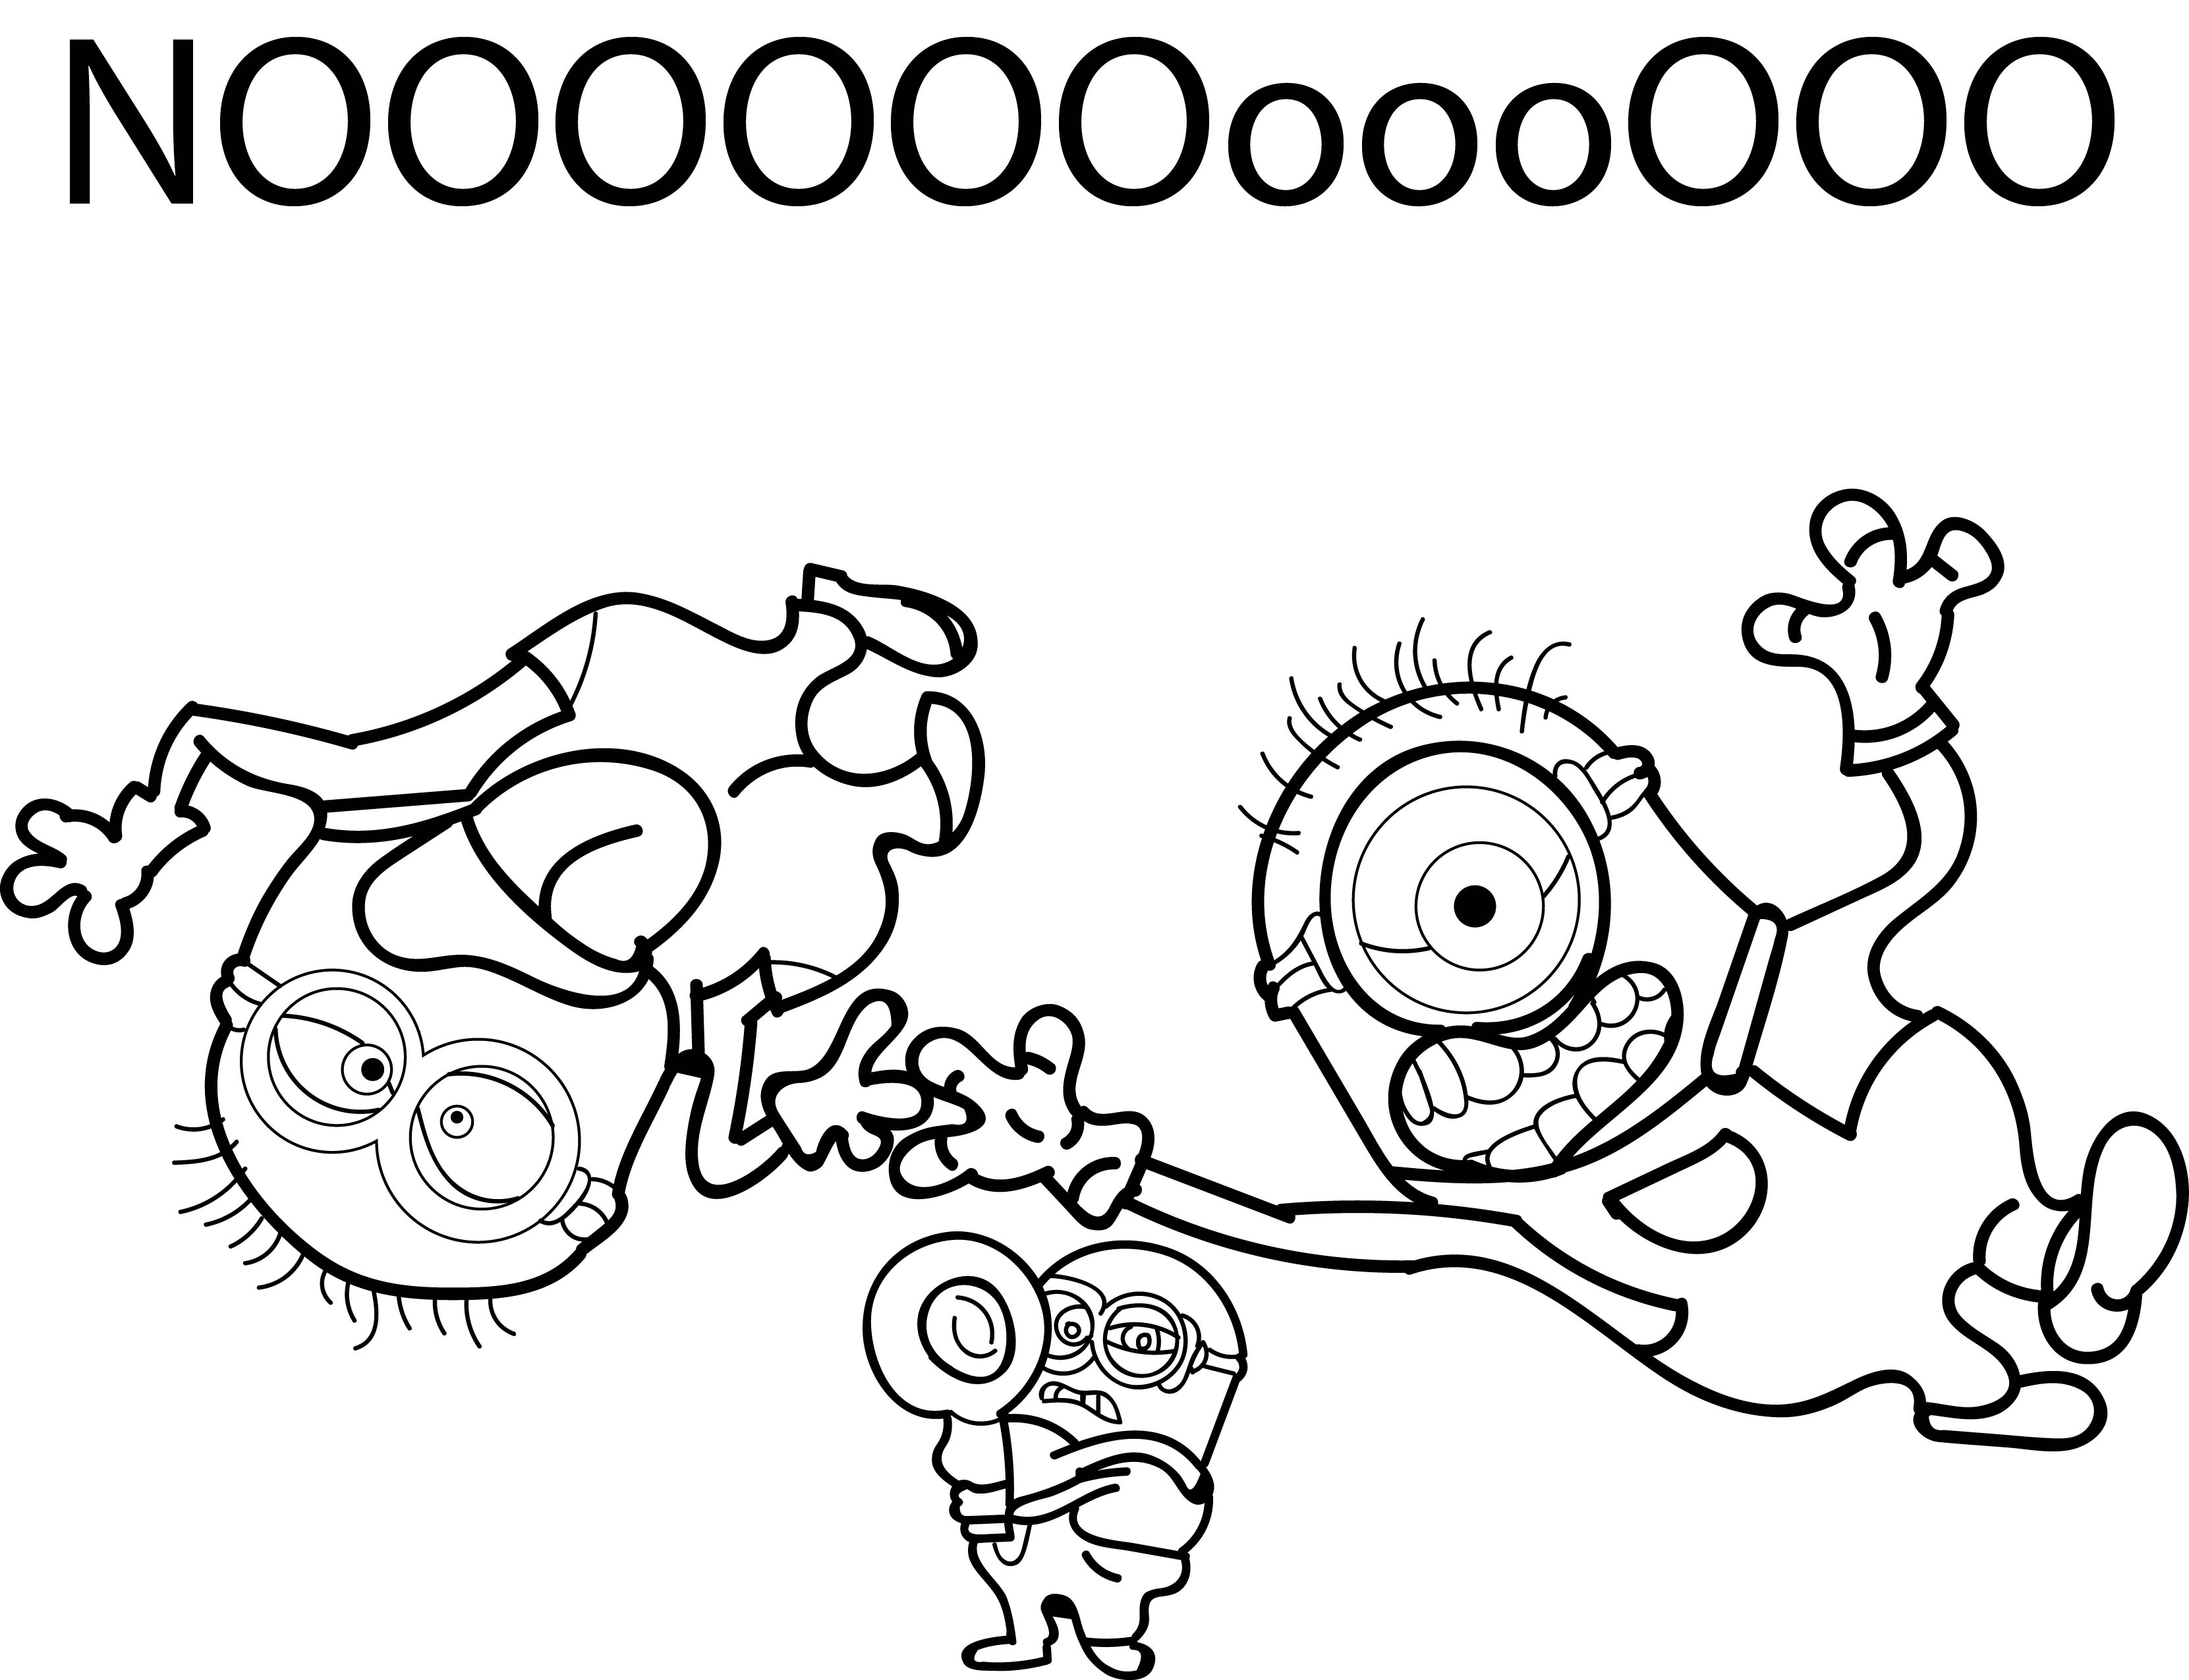 Minions despicable me 2 noooo coloring page for Despicable me 2 coloring pages